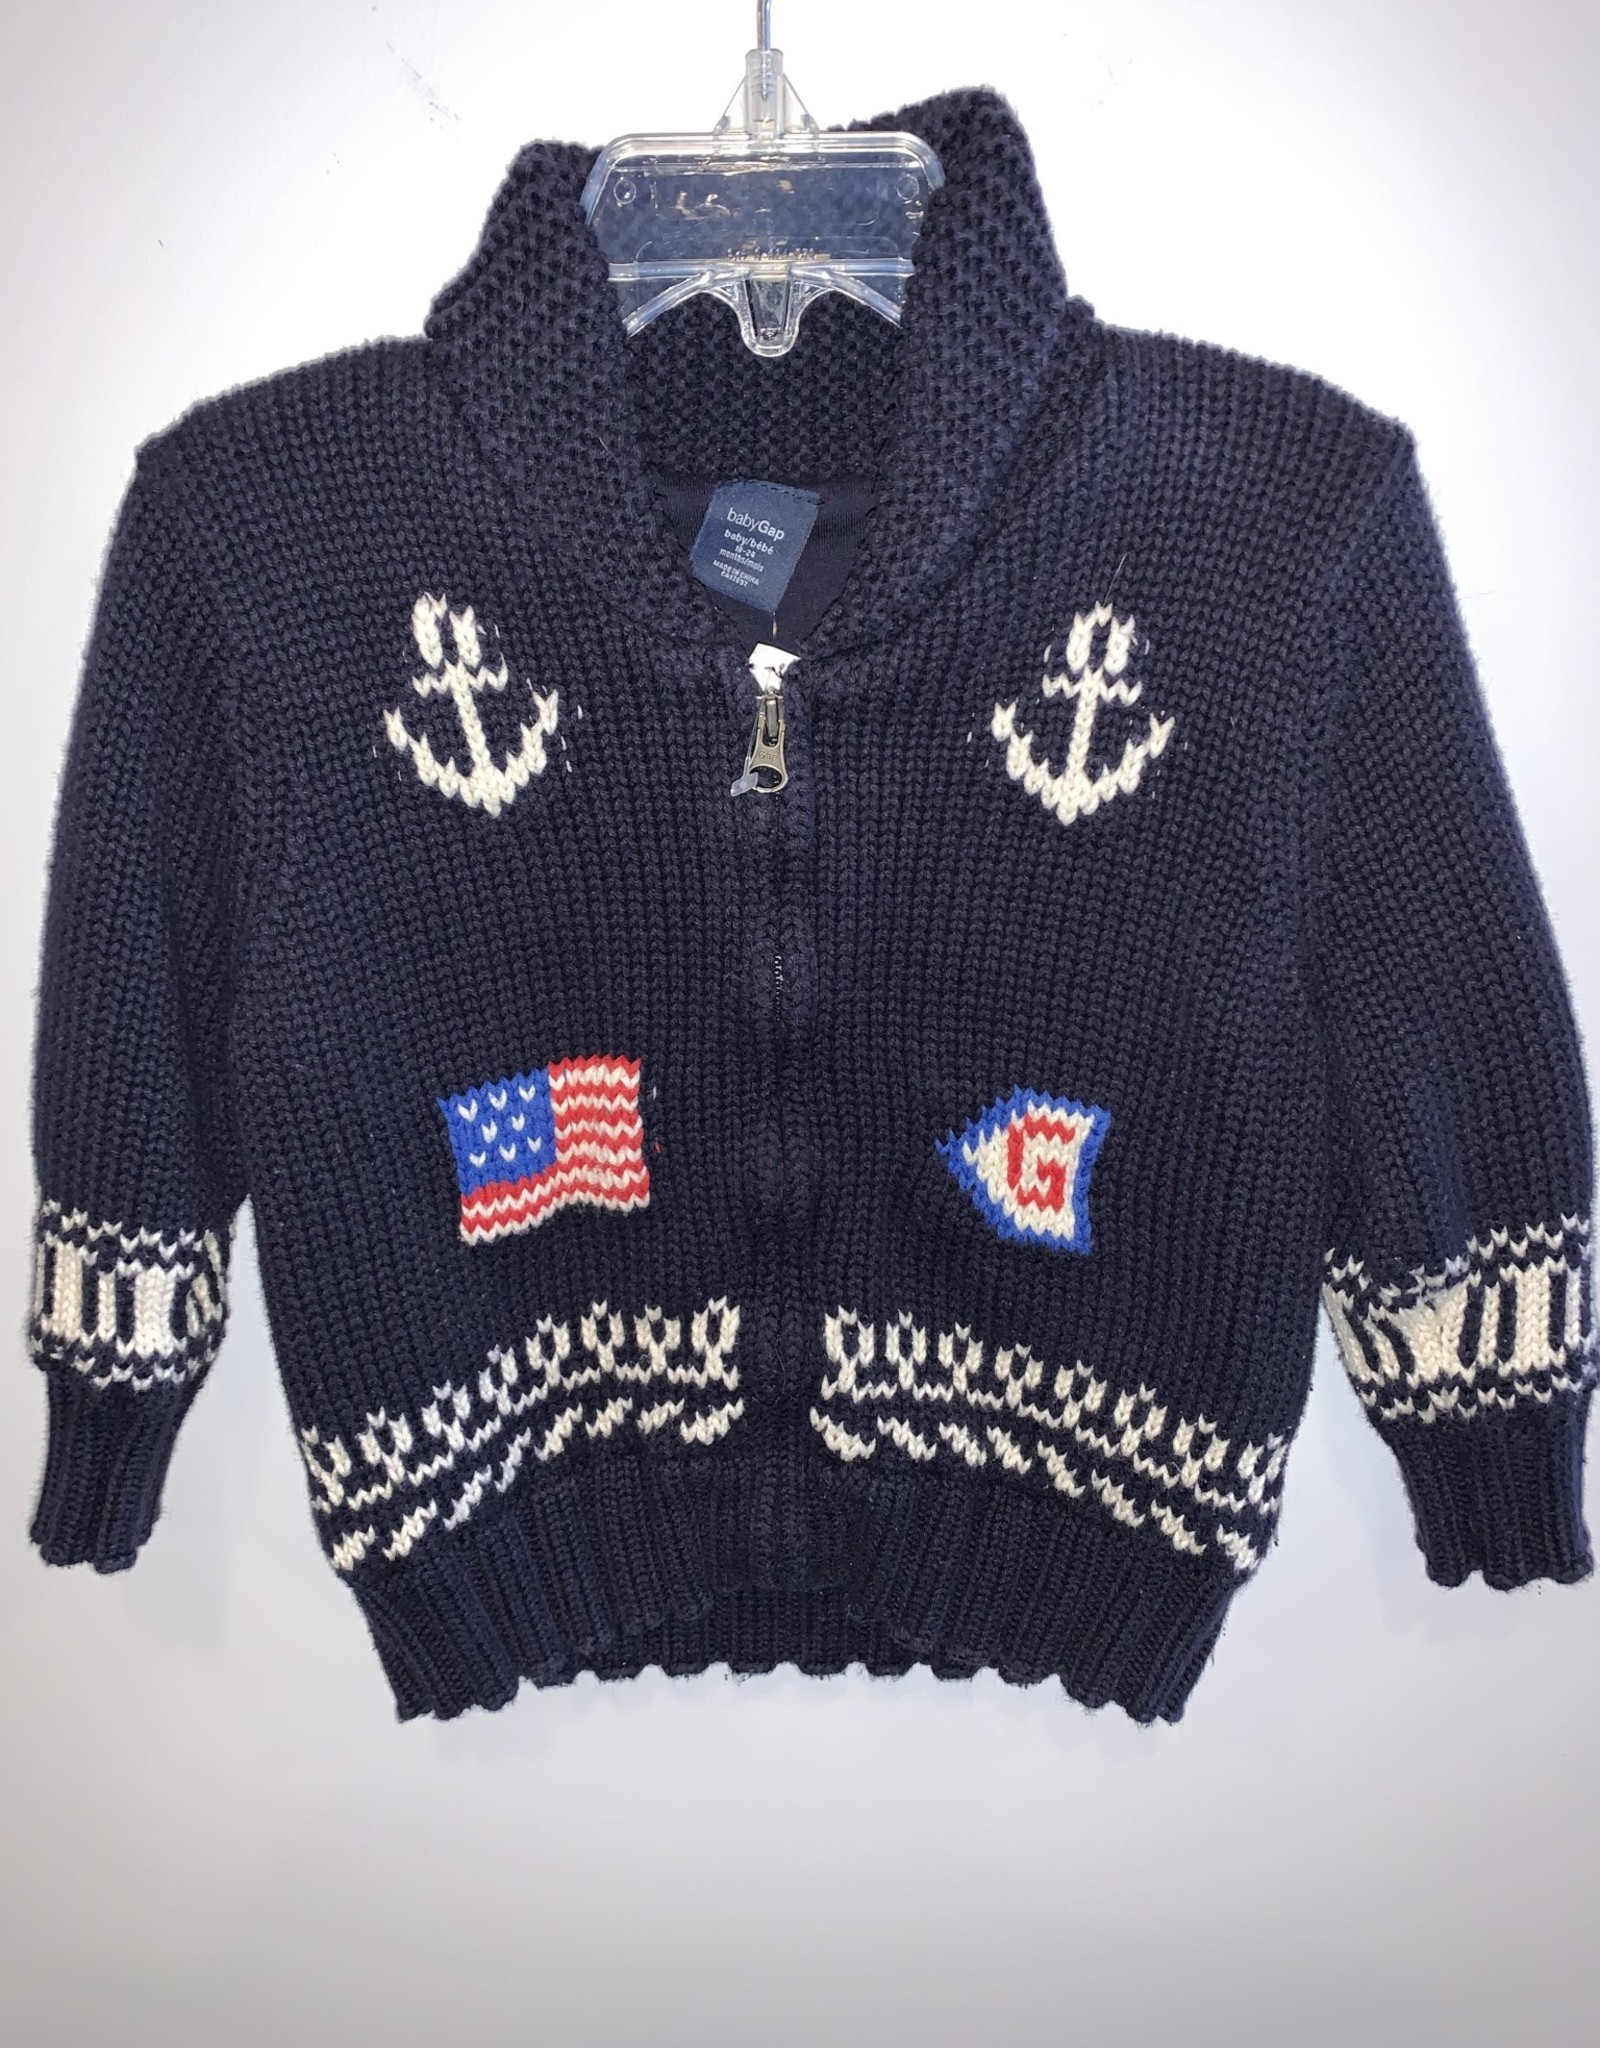 Gap Boys/18-24/Gap/Sweater